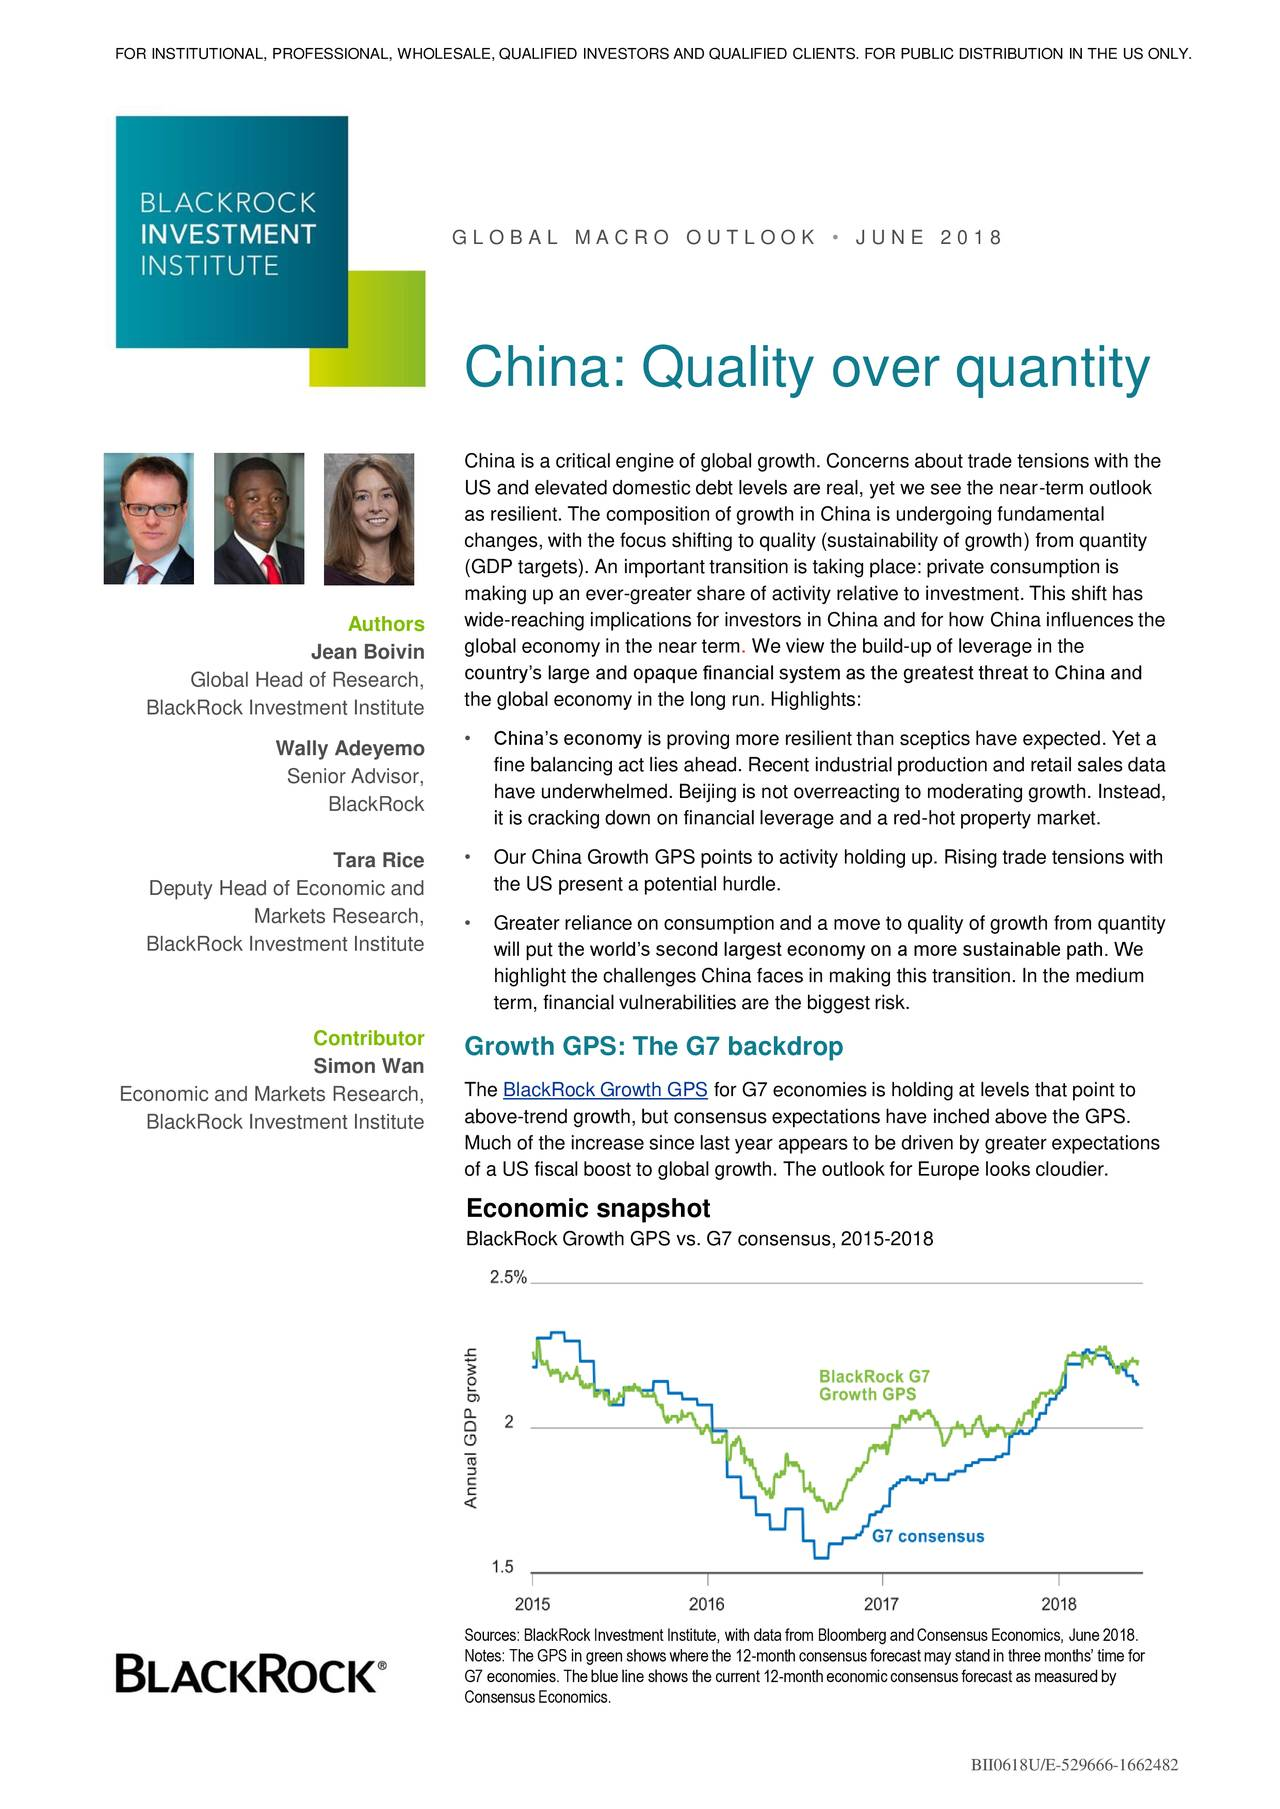 G L O B A L M A C R O O U T L O O K • J U N E 2 0 1 8 China: Quality over quantity China is a critical engine of global growth. Concerns about trade tensions with the US and elevated domestic debt levels are real, yet we see the near-term outlook as resilient. The composition of growth in China is undergoing fundamental changes, with the focus shifting to quality (sustainability of growth) from quantity (GDP targets). An important transition is taking place: private consumption is making up an ever-greater share of activity relative to investment. This shift has Authors wide-reaching implications for investors in China and for how China influences the global economy in the near term. We view the build-up of leverage in the Jean Boivin Global Head of Research, country's large and opaque financial system as the greatest threat to China and the global economy in the long run. Highlights: BlackRock Investment Institute • China's economy is proving more resilient than sceptics have expected. Yet a Wally Adeyemo fine balancing act lies ahead. Recent industrial production and retail sales data Senior Advisor, BlackRock have underwhelmed. Beijing is not overreacting to moderating growth. Instead, it is cracking down on financial leverage and a red-hot property market. Tara Rice • Our China Growth GPS points to activity holding up. Rising trade tensions with the US present a potential hurdle. Deputy Head of Economic and Markets Research, • Greater reliance on consumption and a move to quality of growth from quantity BlackRock Investment Institute will put the world's second largest economy on a more sustainable path. We highlight the challenges China faces in making this transition. In the medium term, financial vulnerabilities are the biggest risk. Contributor Growth GPS: The G7 backdrop Simon Wan Economic and Markets Research, The BlackRock Growth GPS for G7 economies is holding at levels that point to BlackRock Investment Institute above-trend growth, but consensus expect